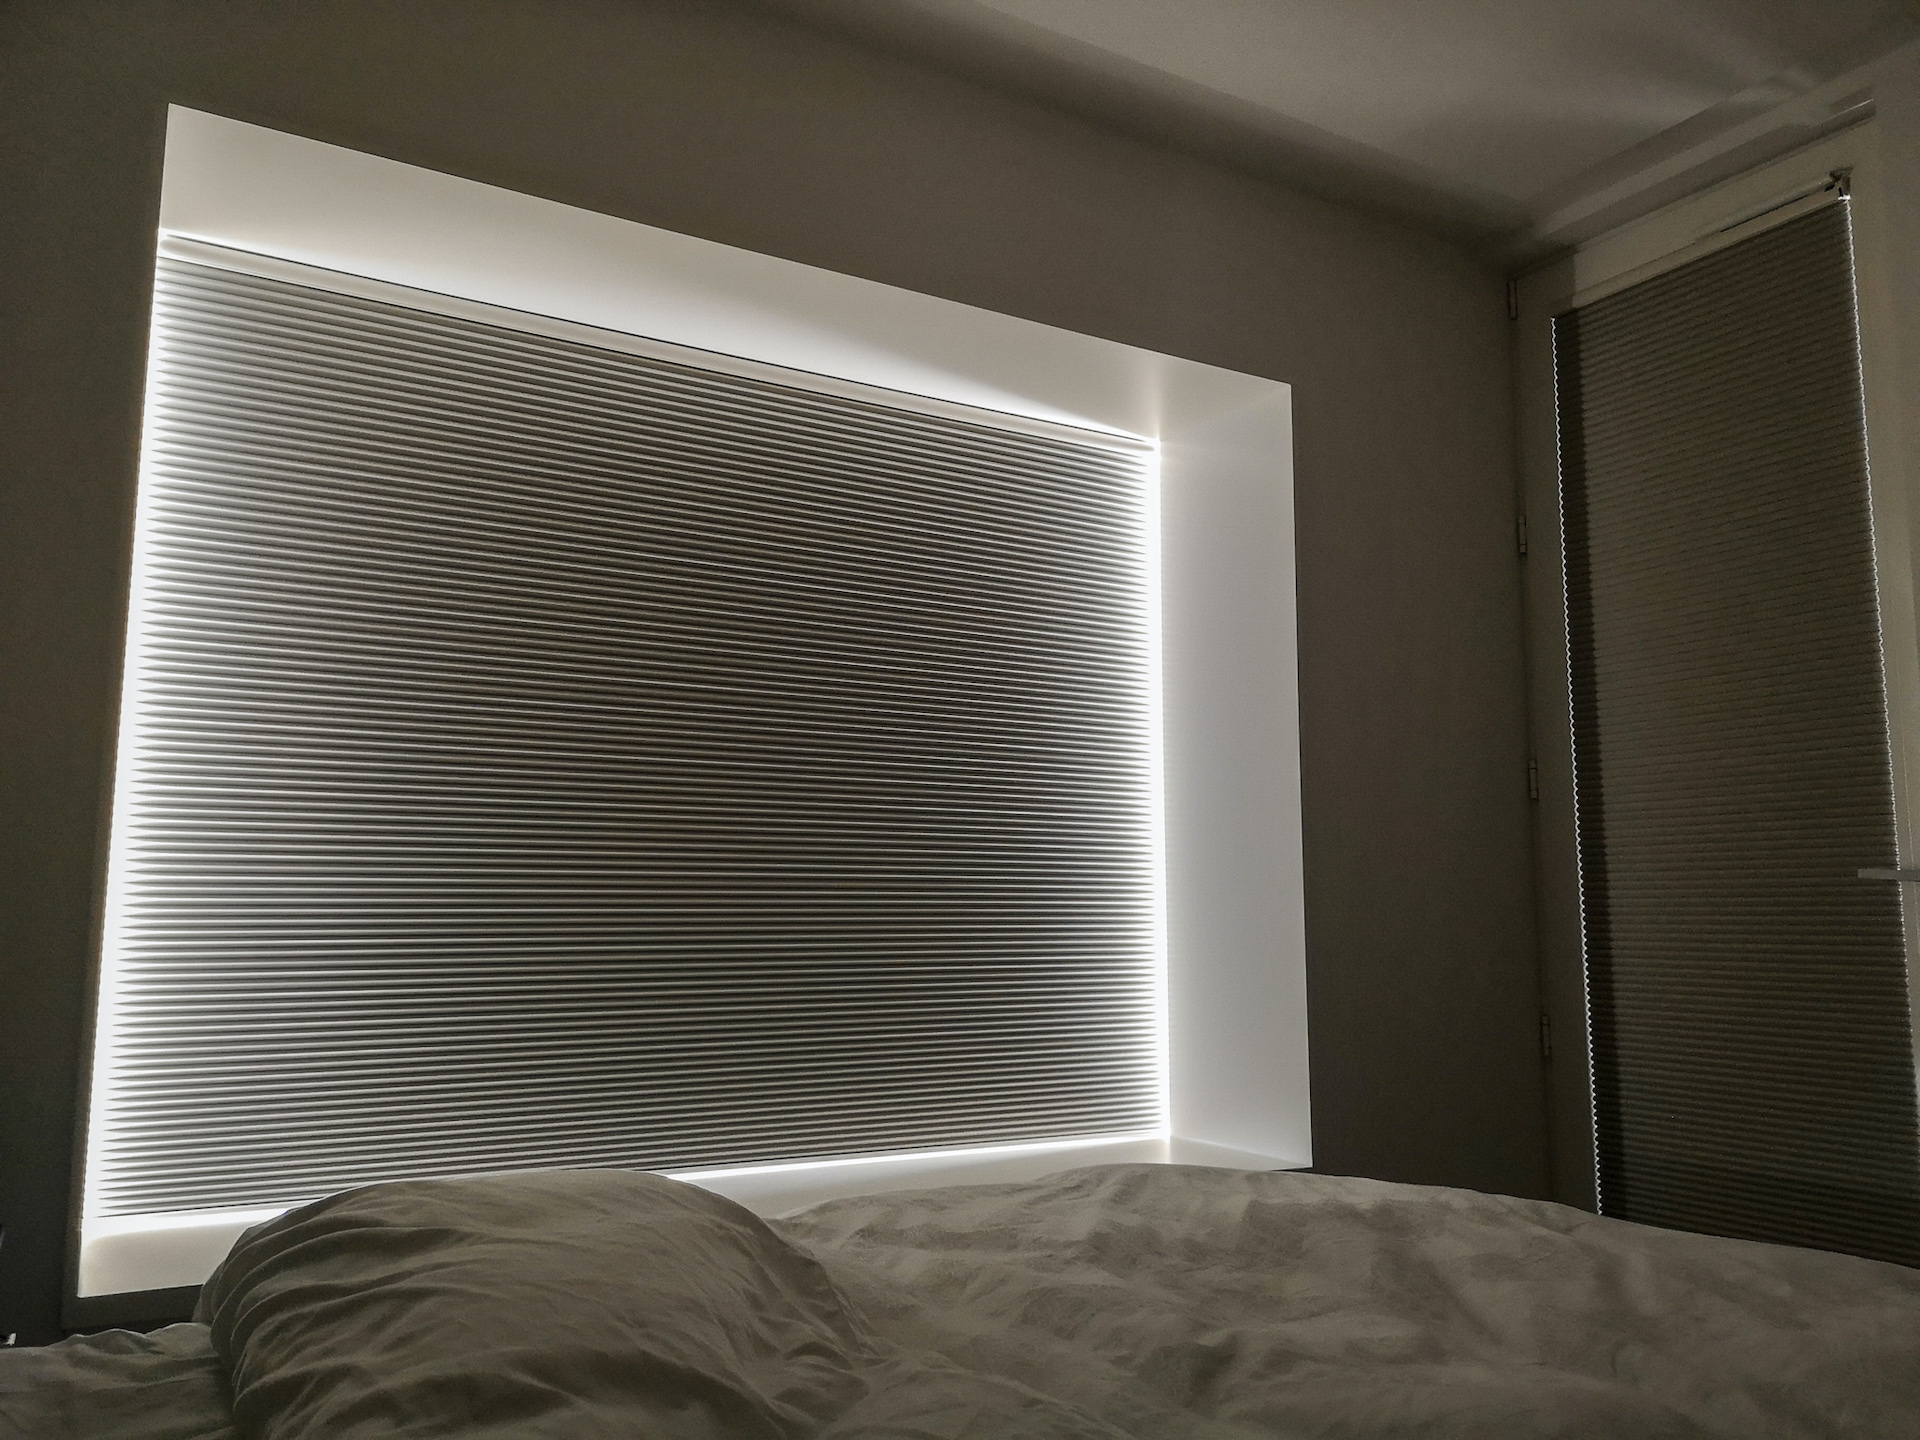 Duette-shades-bedroom-london-1